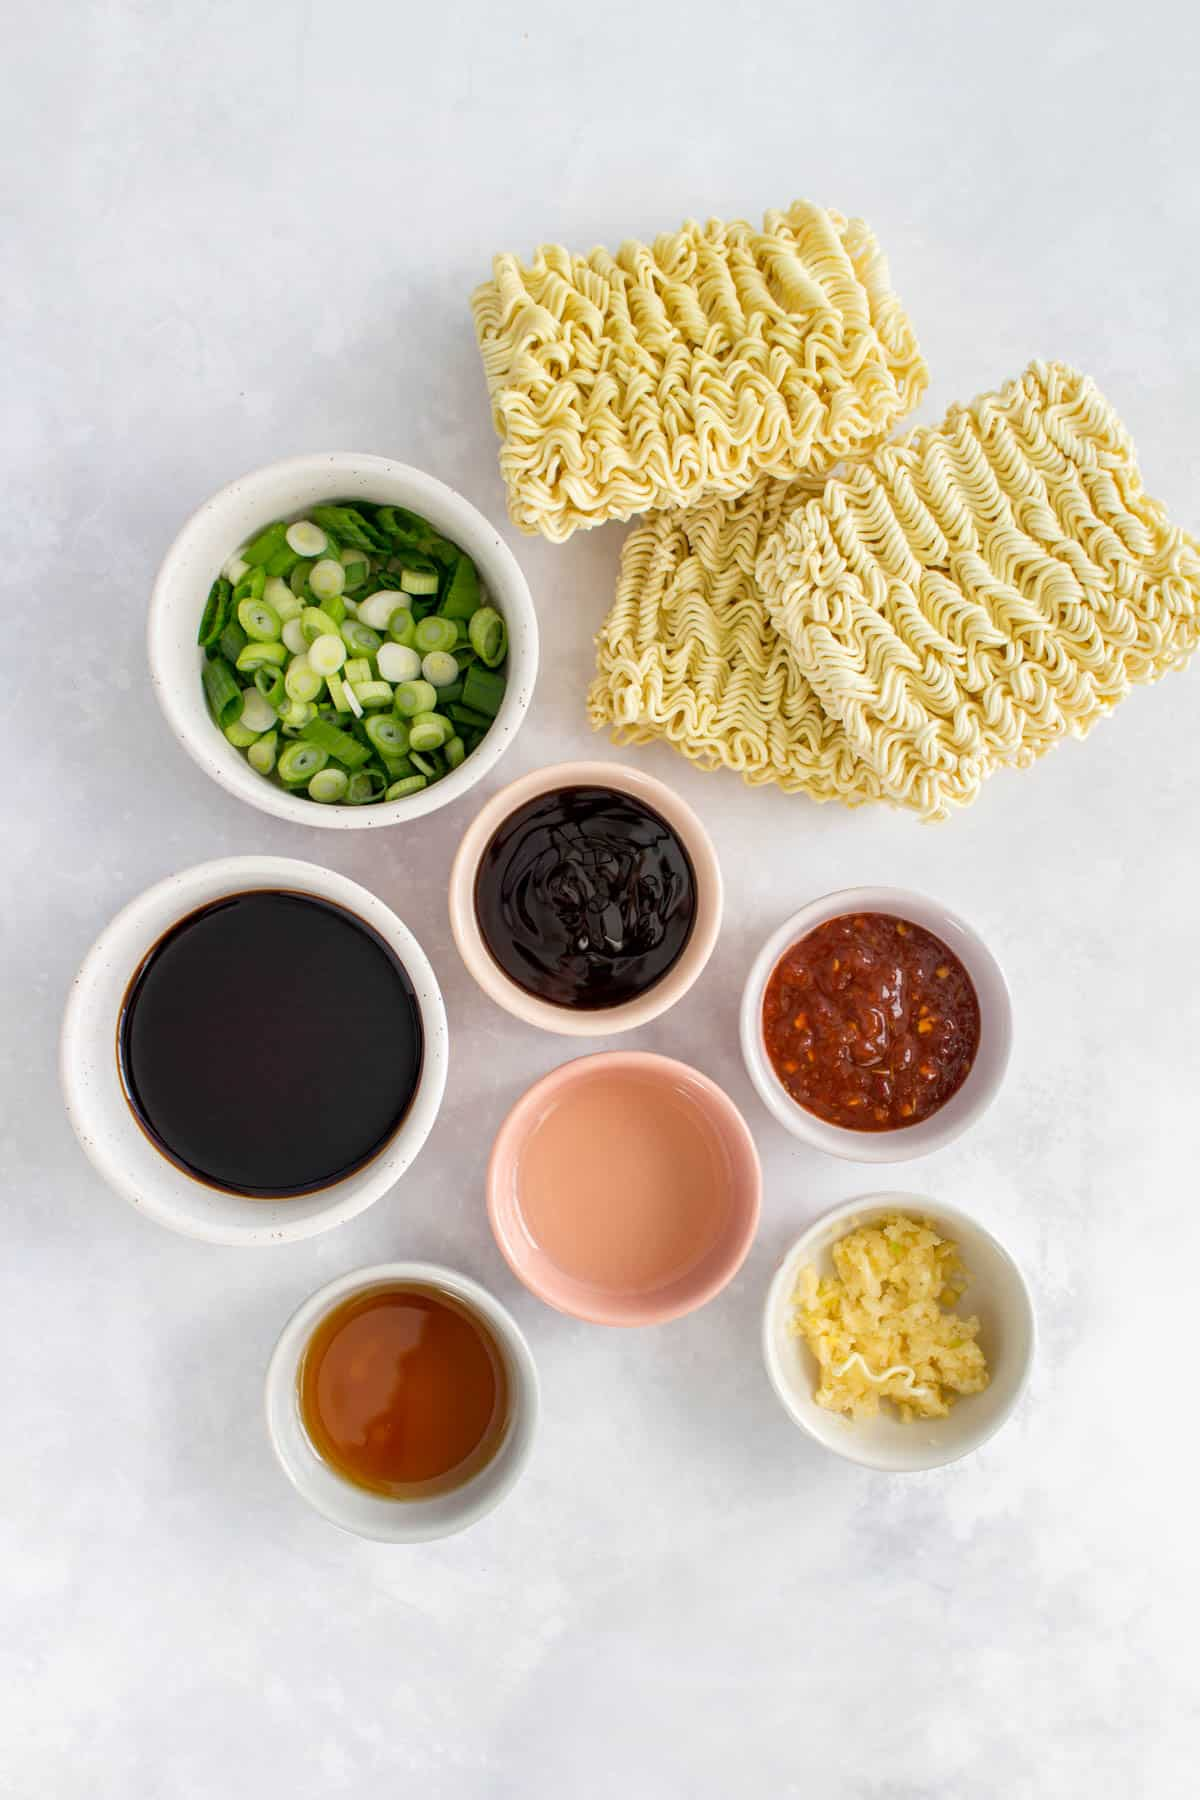 Overhead photo of ingredients need to make sesame noodles.